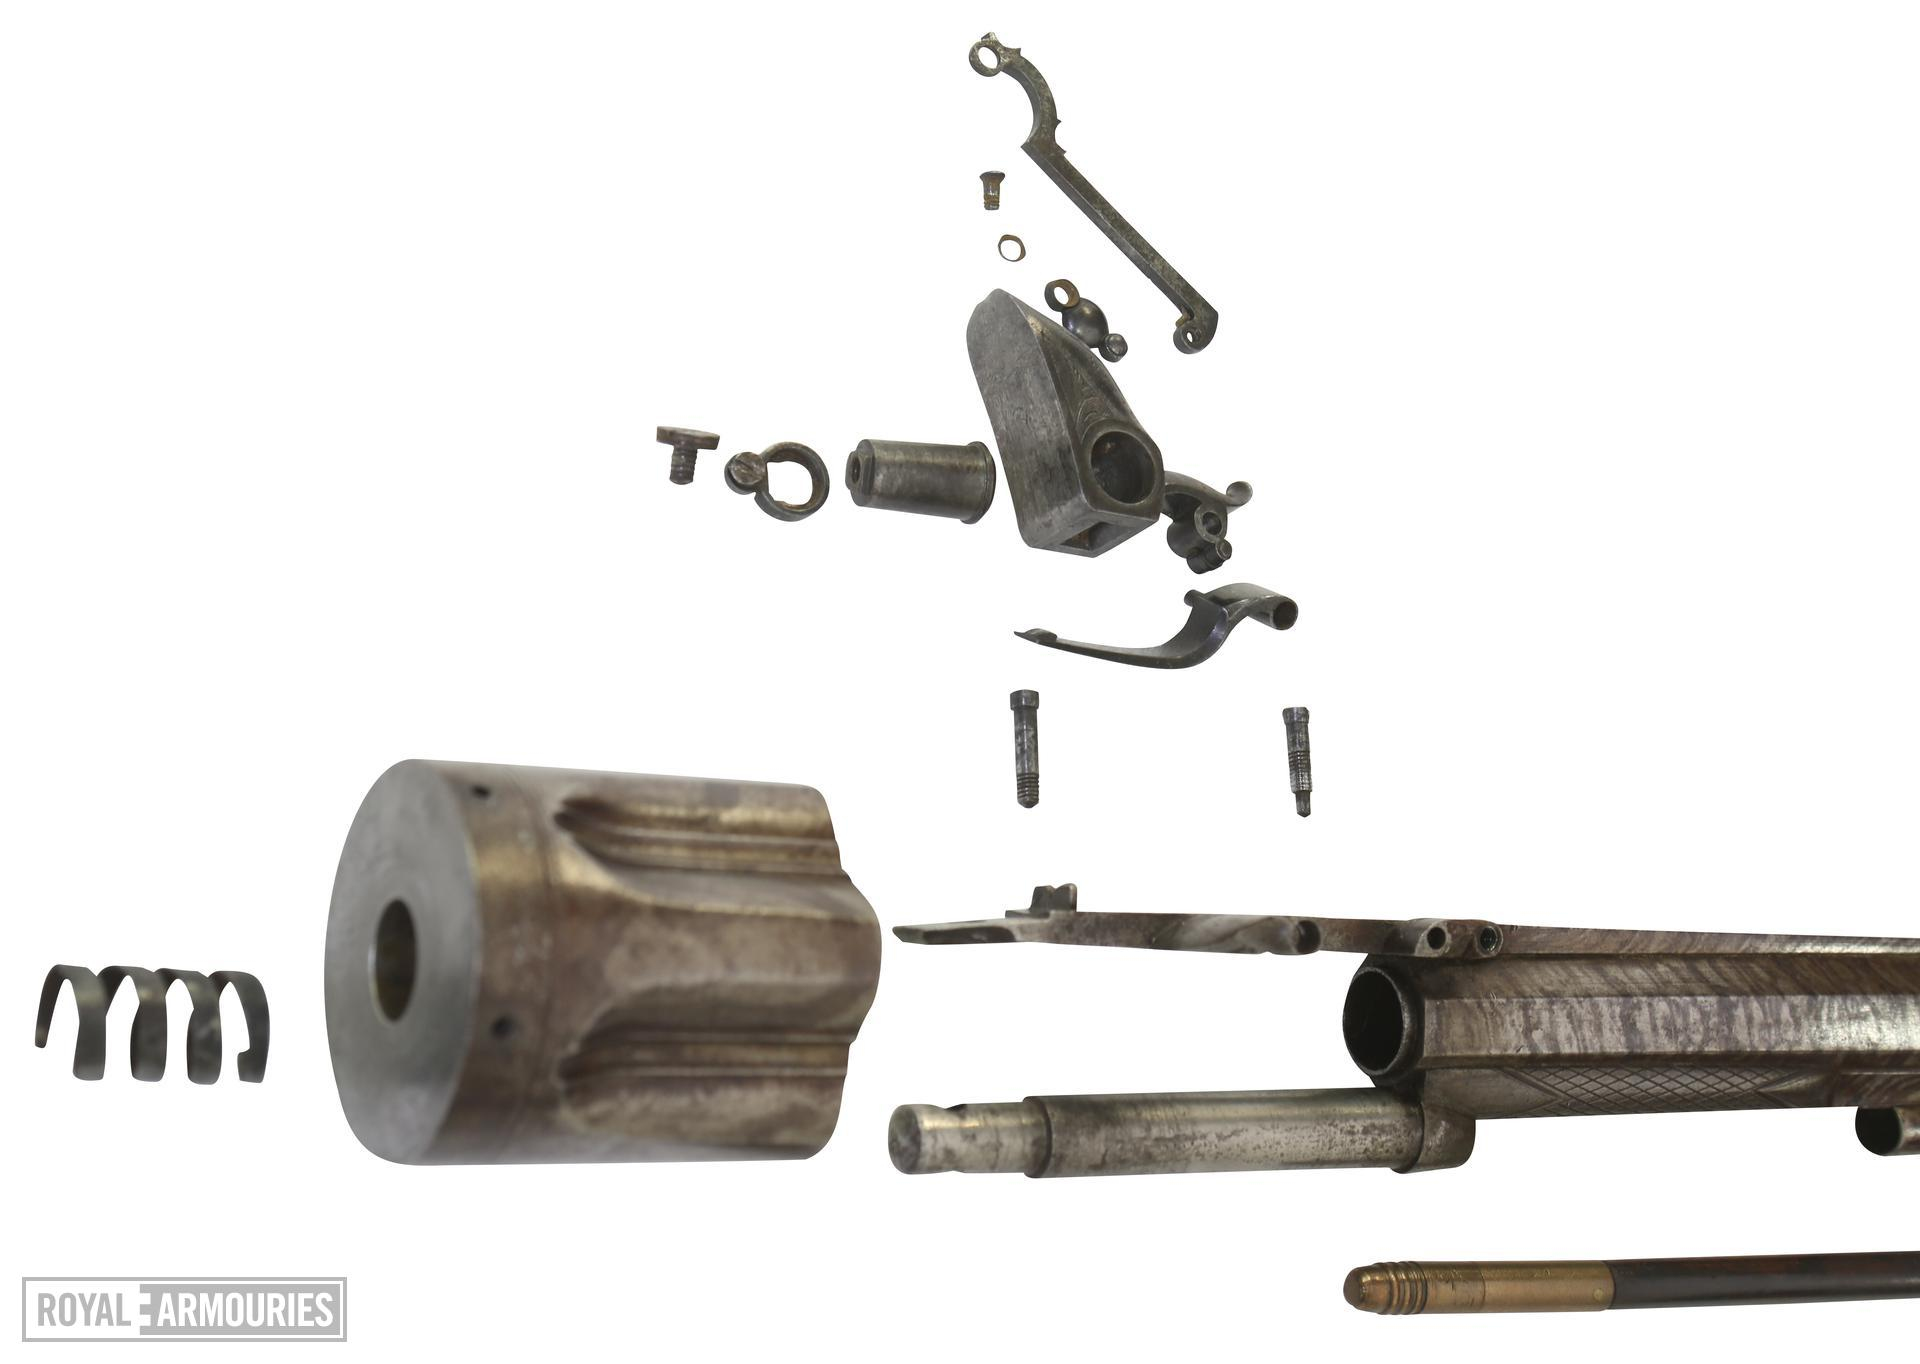 Flintlock six-shot revolver by Collier. A revolving cylinder pistol that requires the cylinder to be manually turned. It has an octagonal barrel, with single pipe for a wooden cleaning rod. The cylinder is six-shot, and has a frizzen mounted to the right of the barrel, as would normally be found on a standard flintlock pistol. The rotation of the cylinder permits the touch-hole to line up with the frizzen. There is a sliding cover over the touch hole. The trigger guard is squared at the rear, and the butt is fully chequered. The lockplate, tang and top of the barrel are foliate engraved, with the Union Jack and Stand of Arms also incorporated. XII.4000